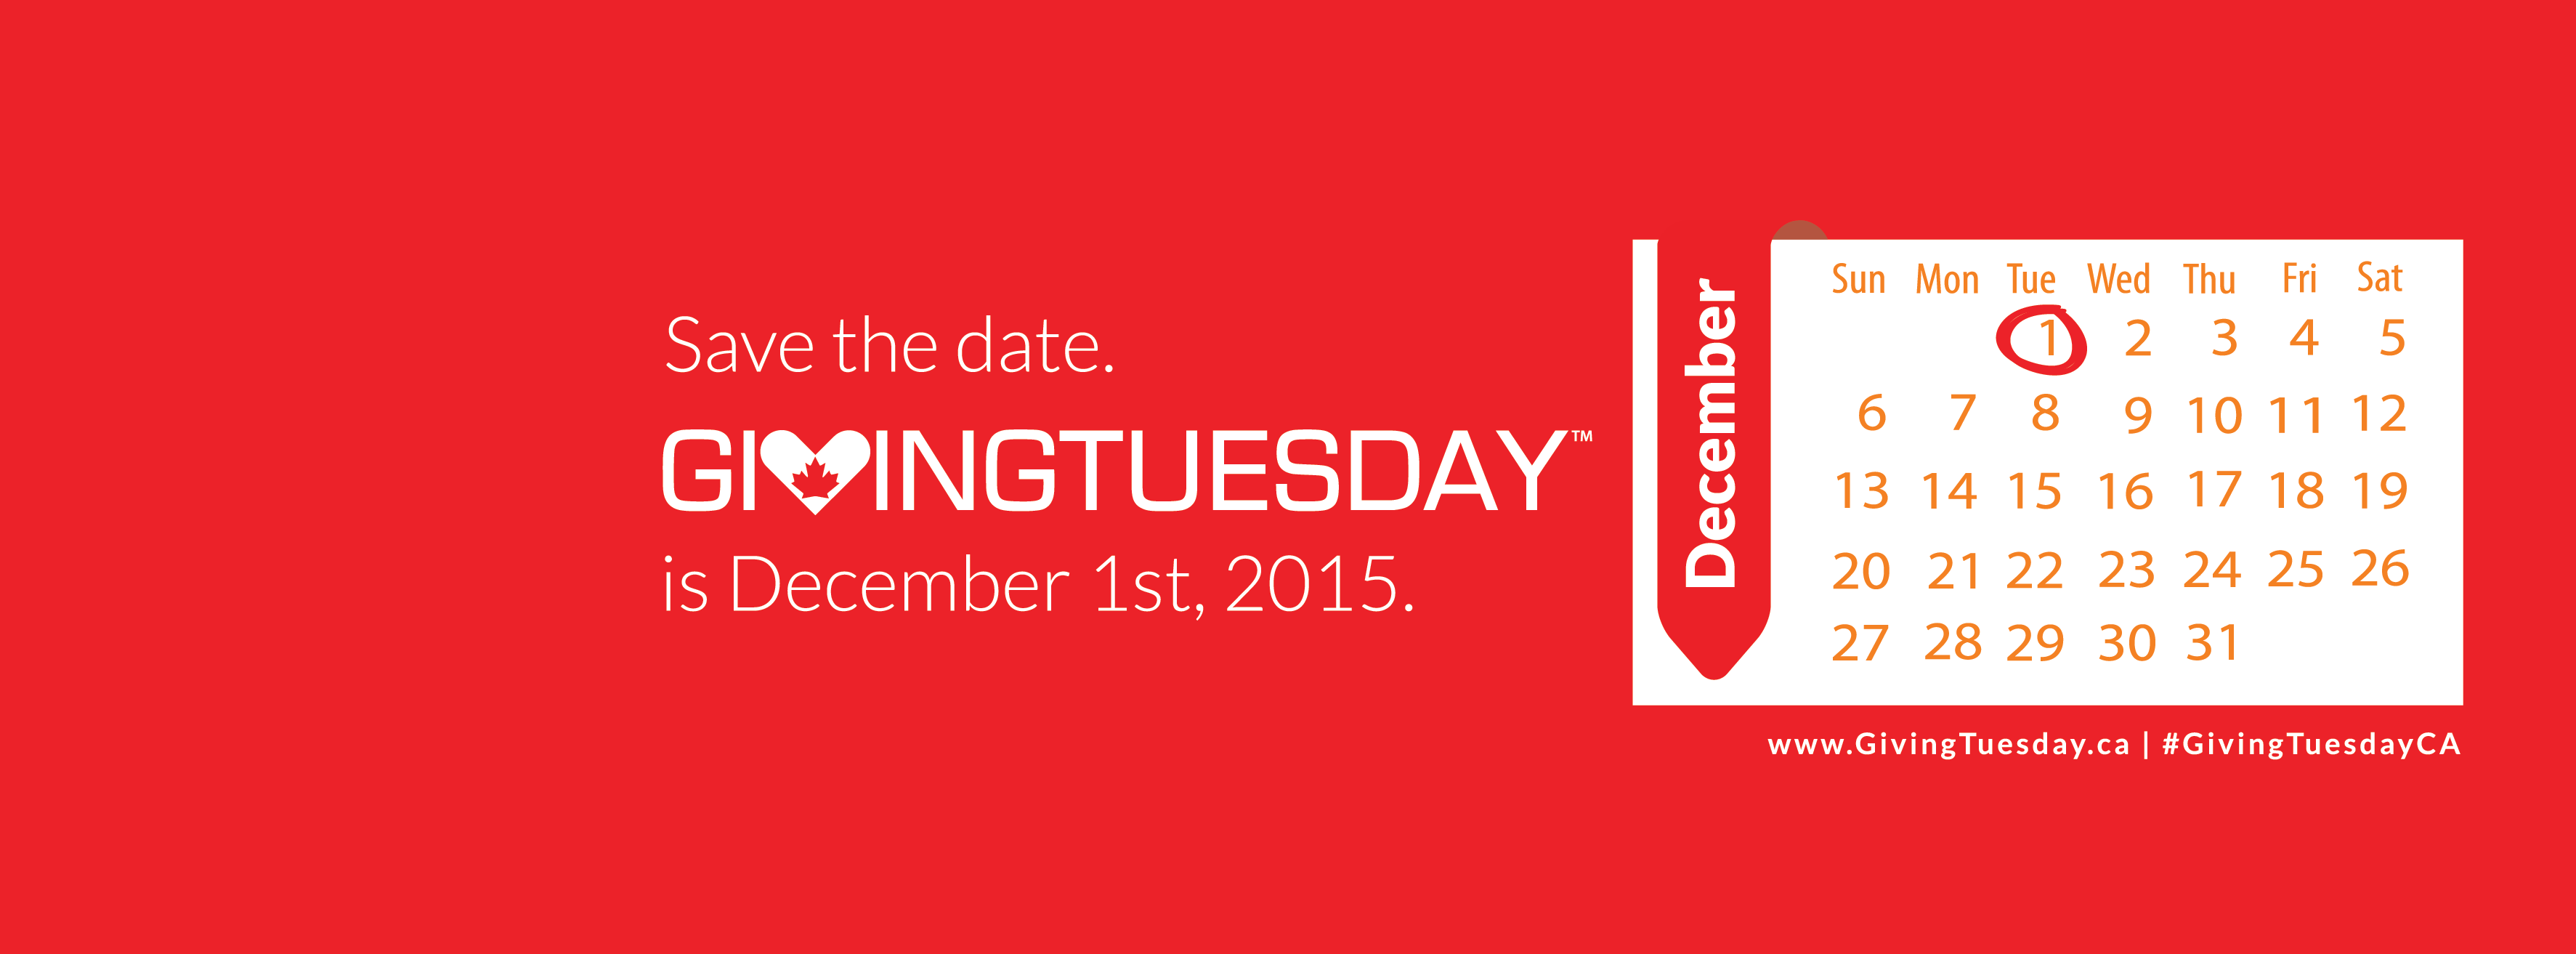 WE ARE A PROUD GIVING TUESDAY PARTNER!